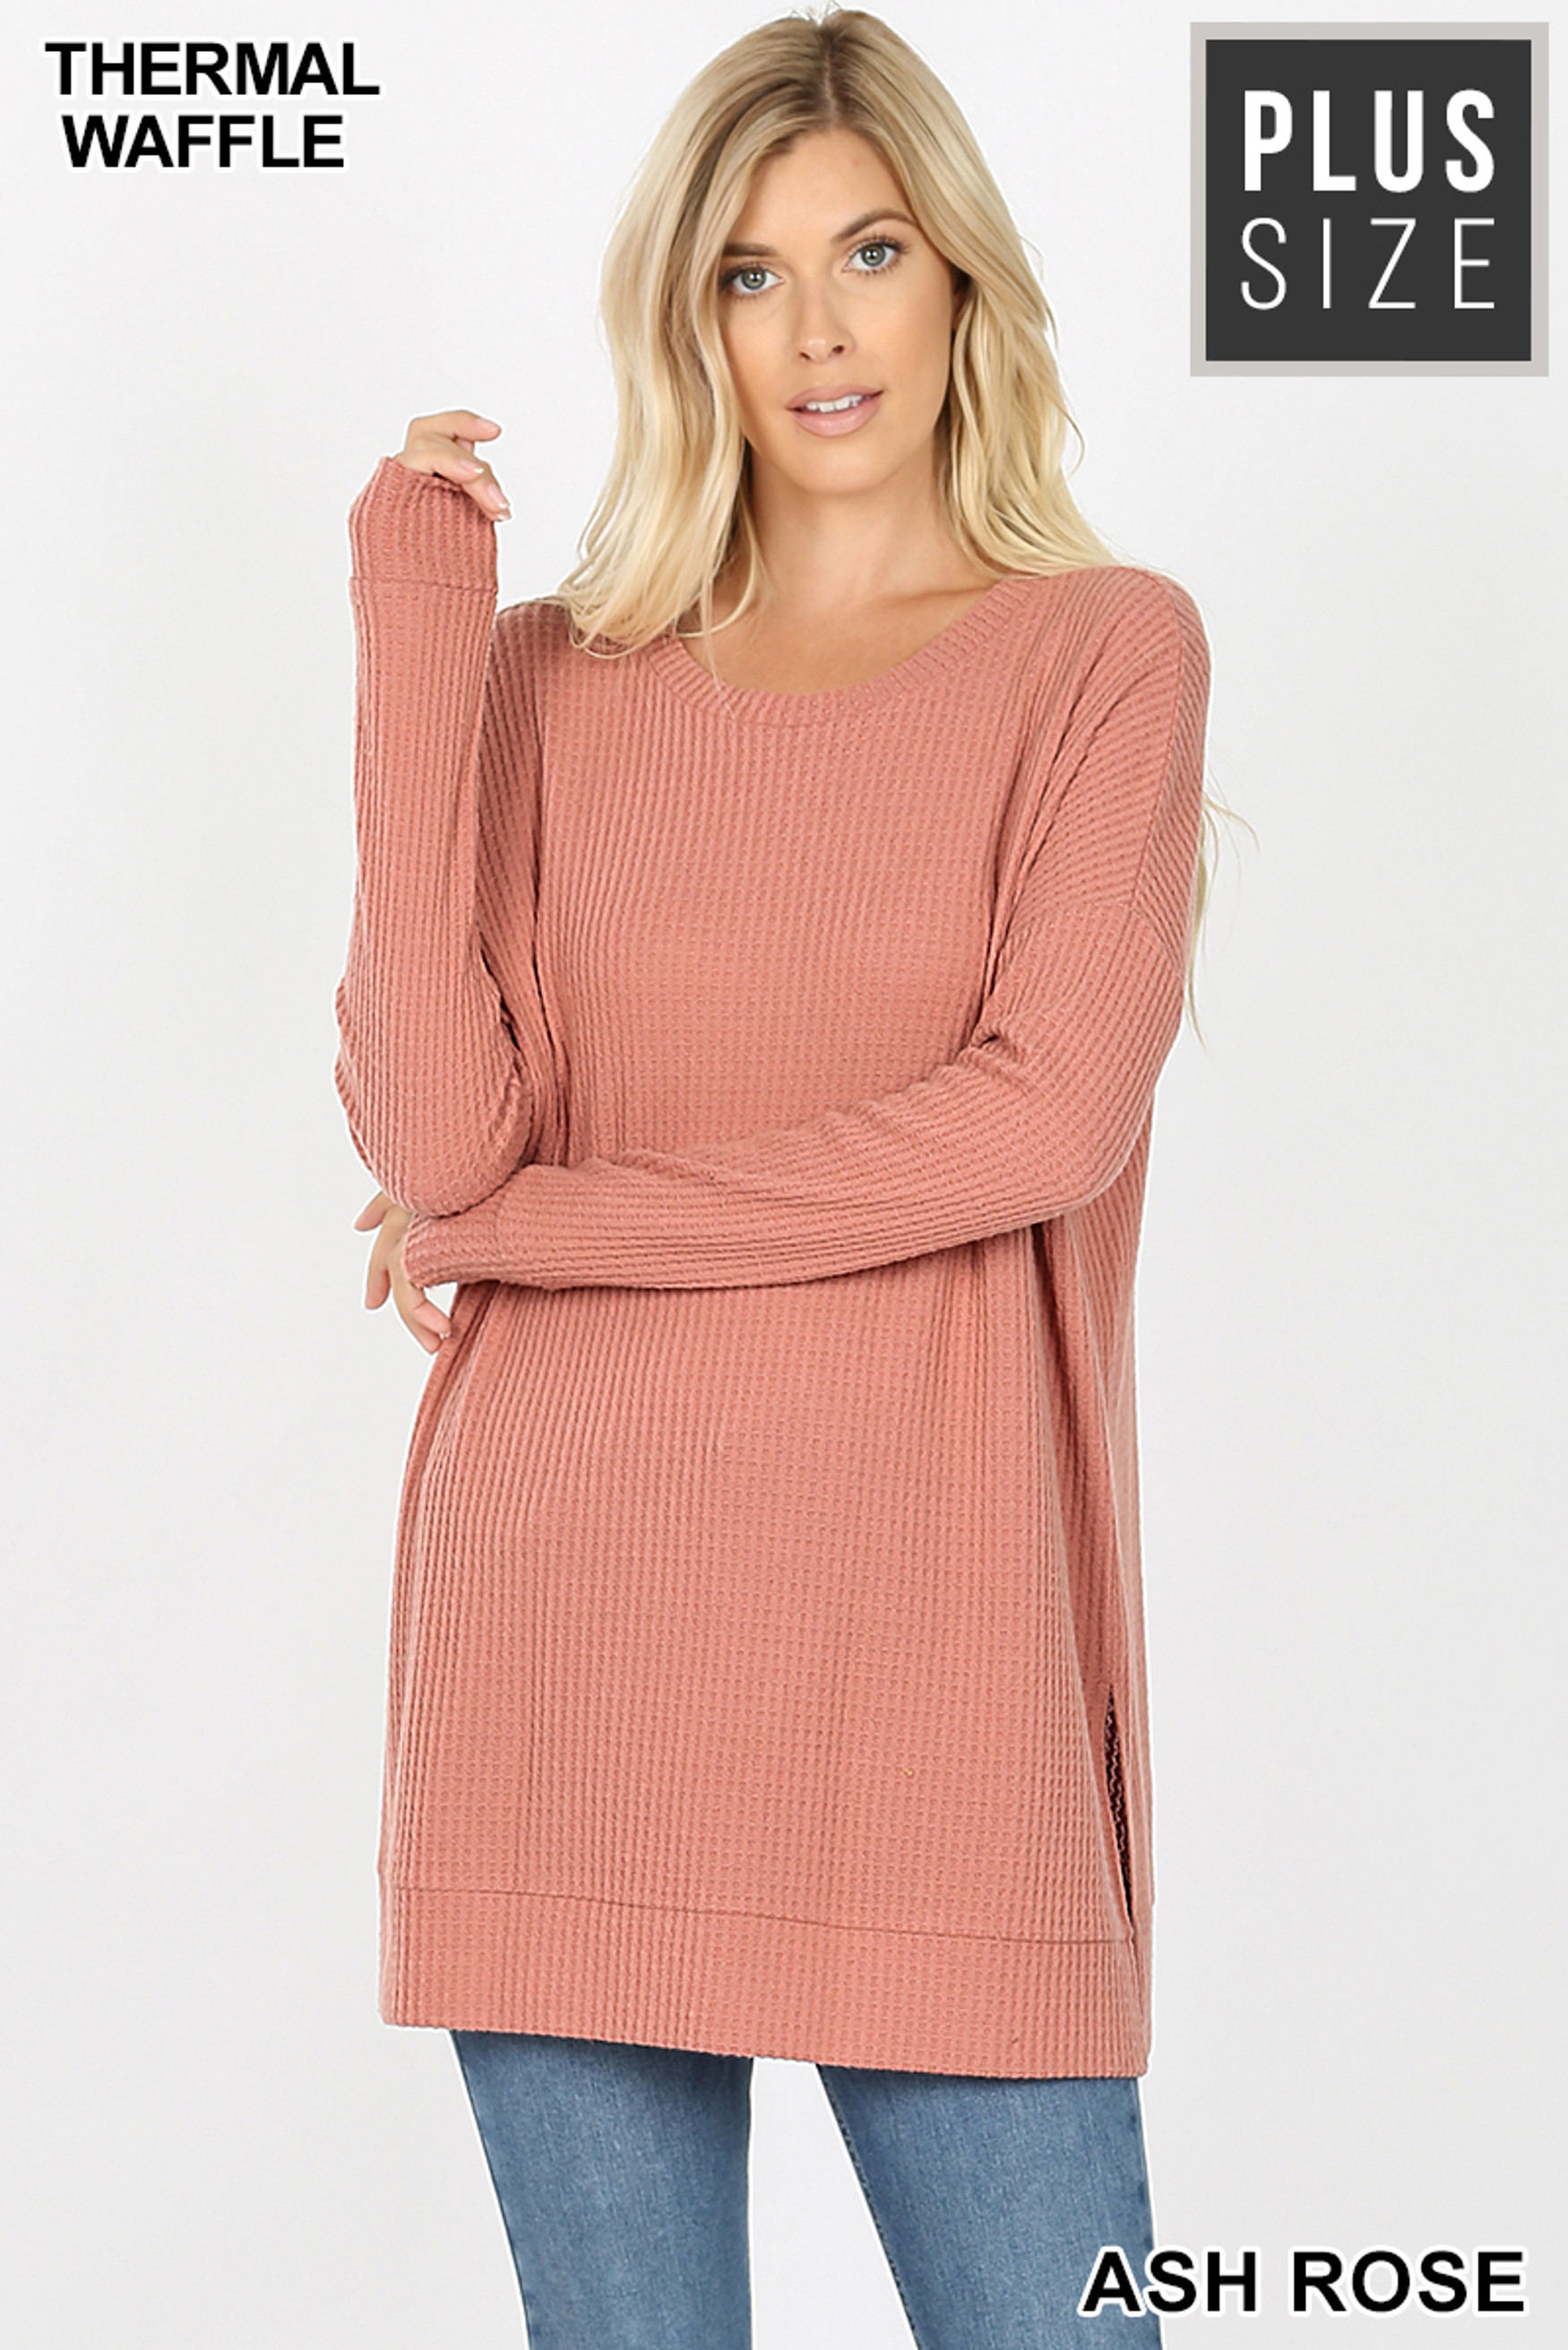 Front image of Ash Rose Brushed Thermal Waffle Knit Round Neck Plus Size Sweater